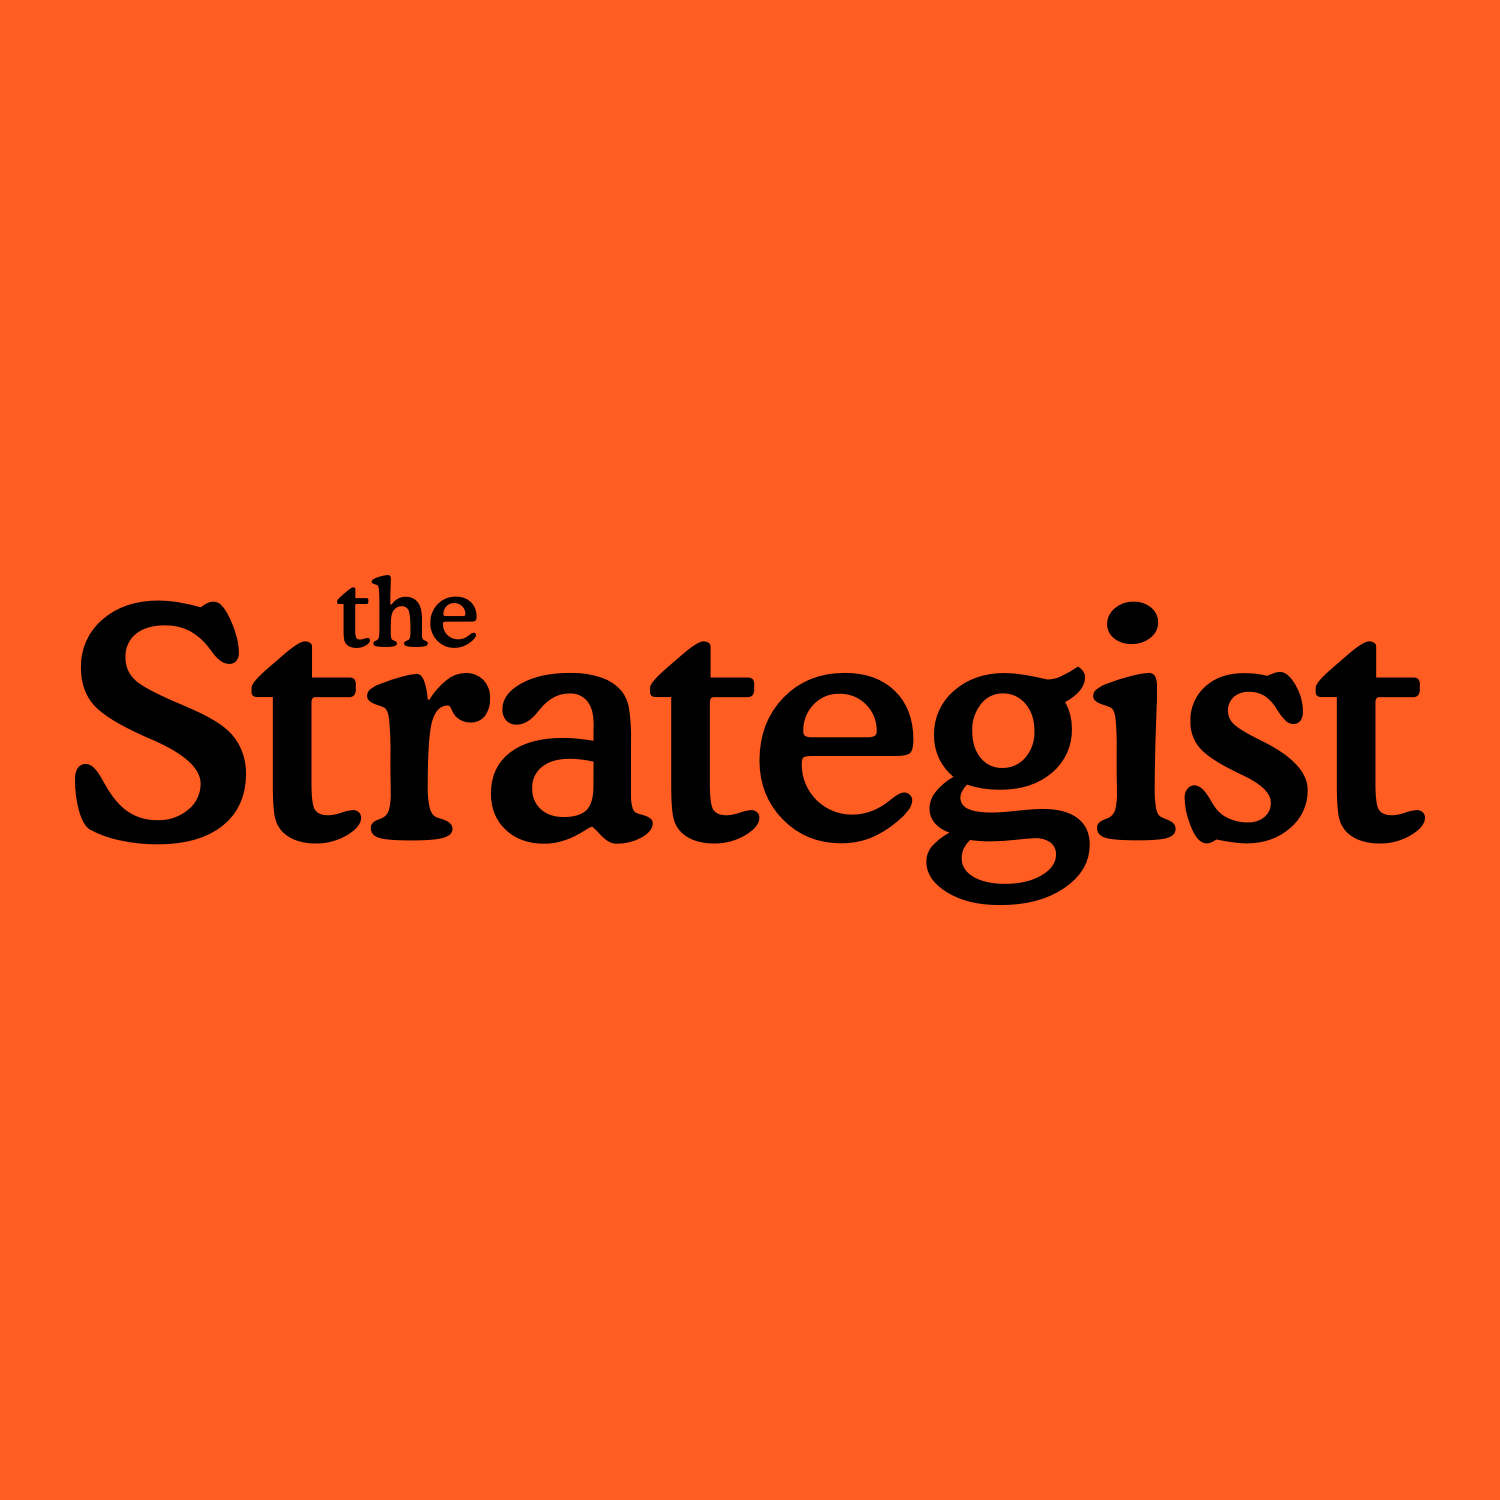 Difference Between Strategist and Consultant